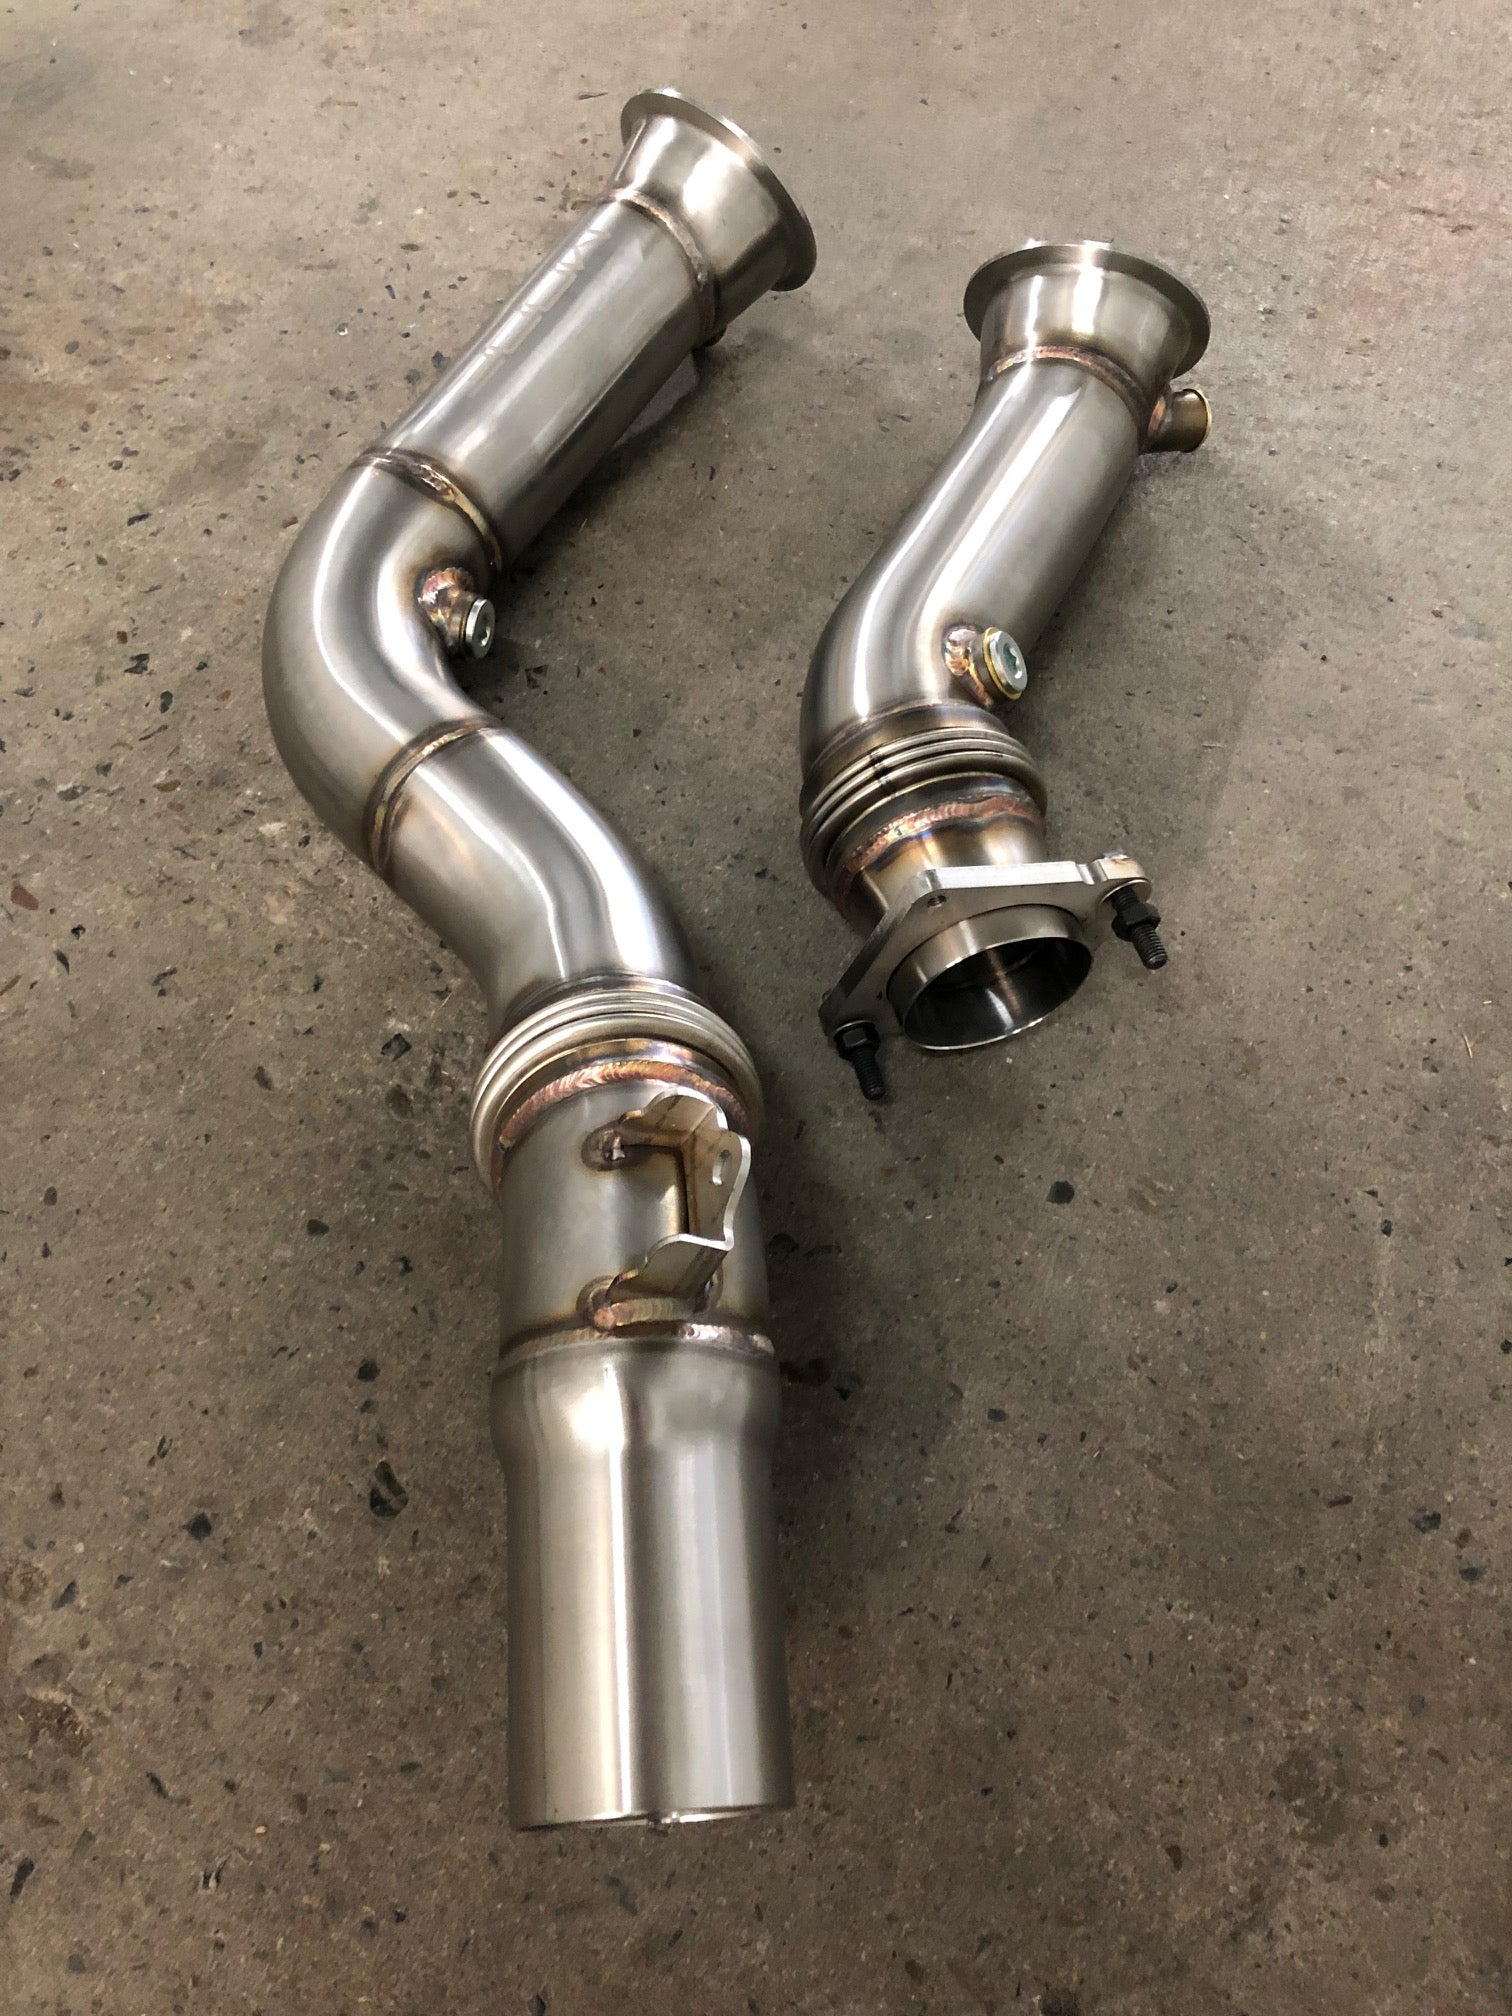 MODE Design Performance Decatted/Catless Downpipe suits BMW M2 Competition (F87) & M3/M4 (F80/F82) S55